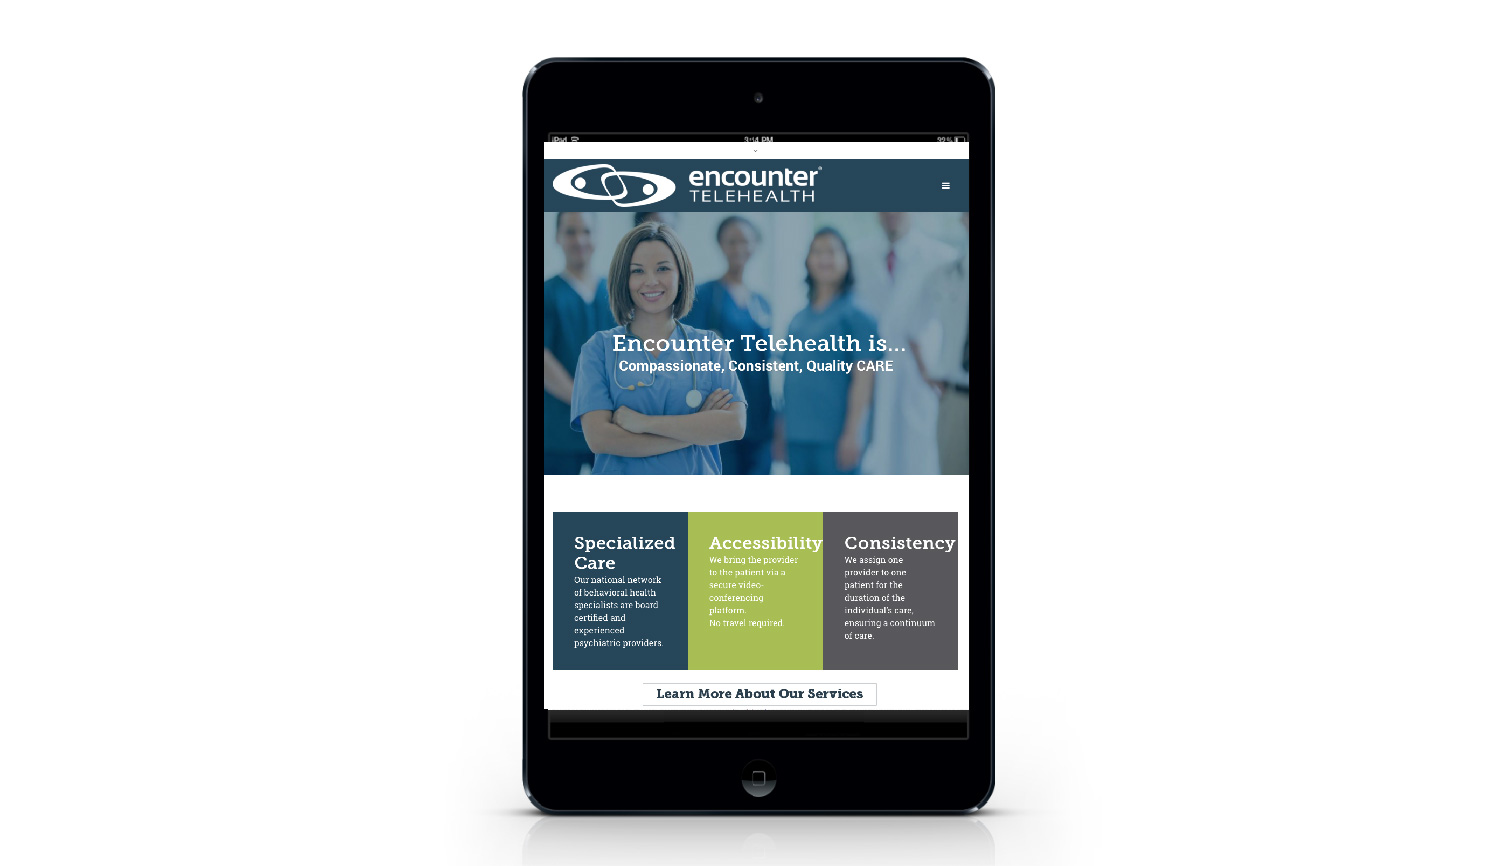 Encounter Telehealth tablet view